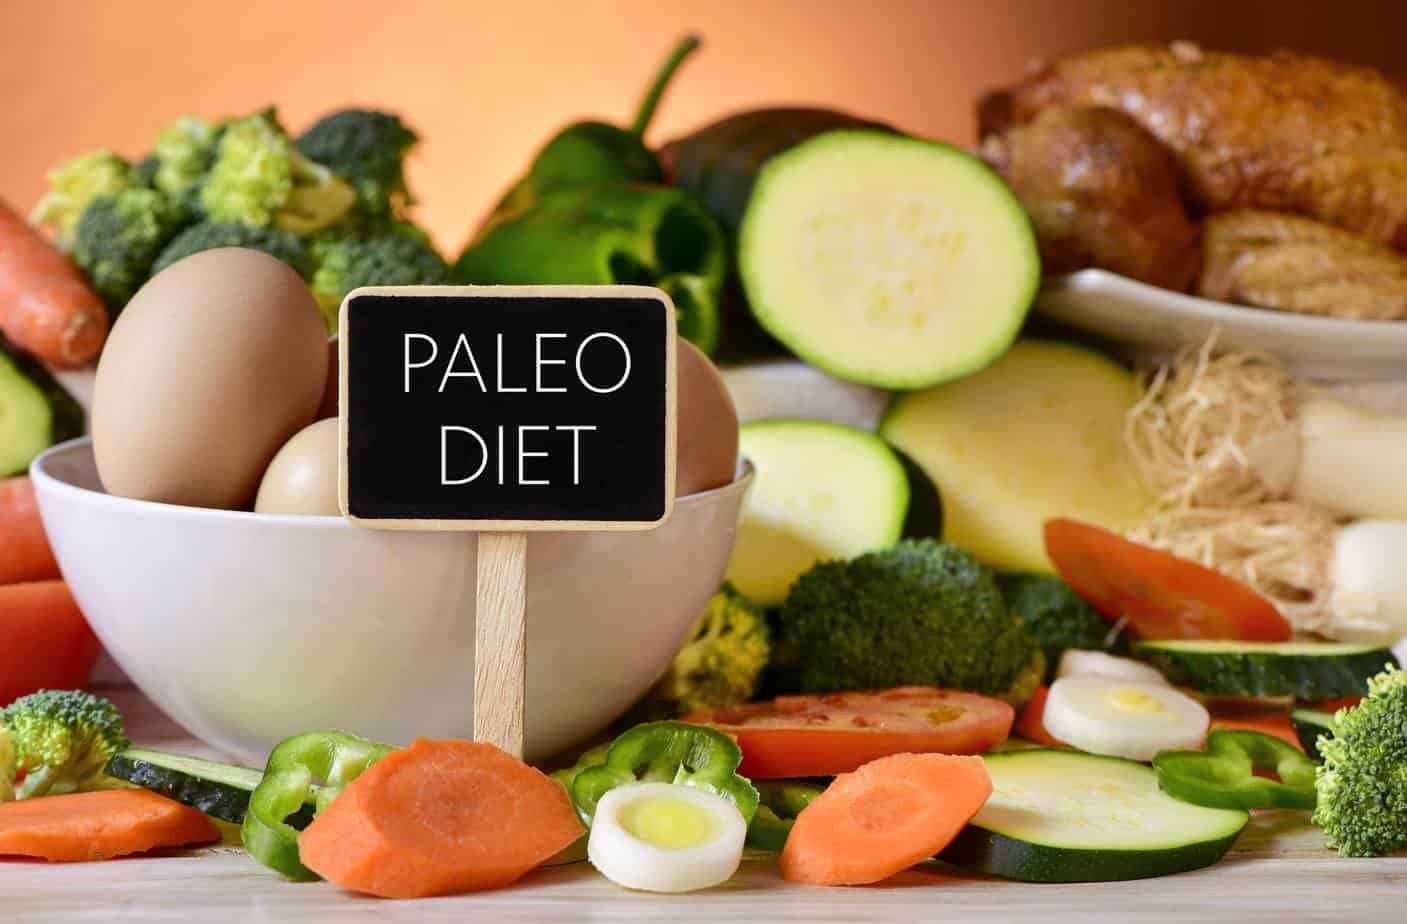 Can Going Paleo Make You Sick?